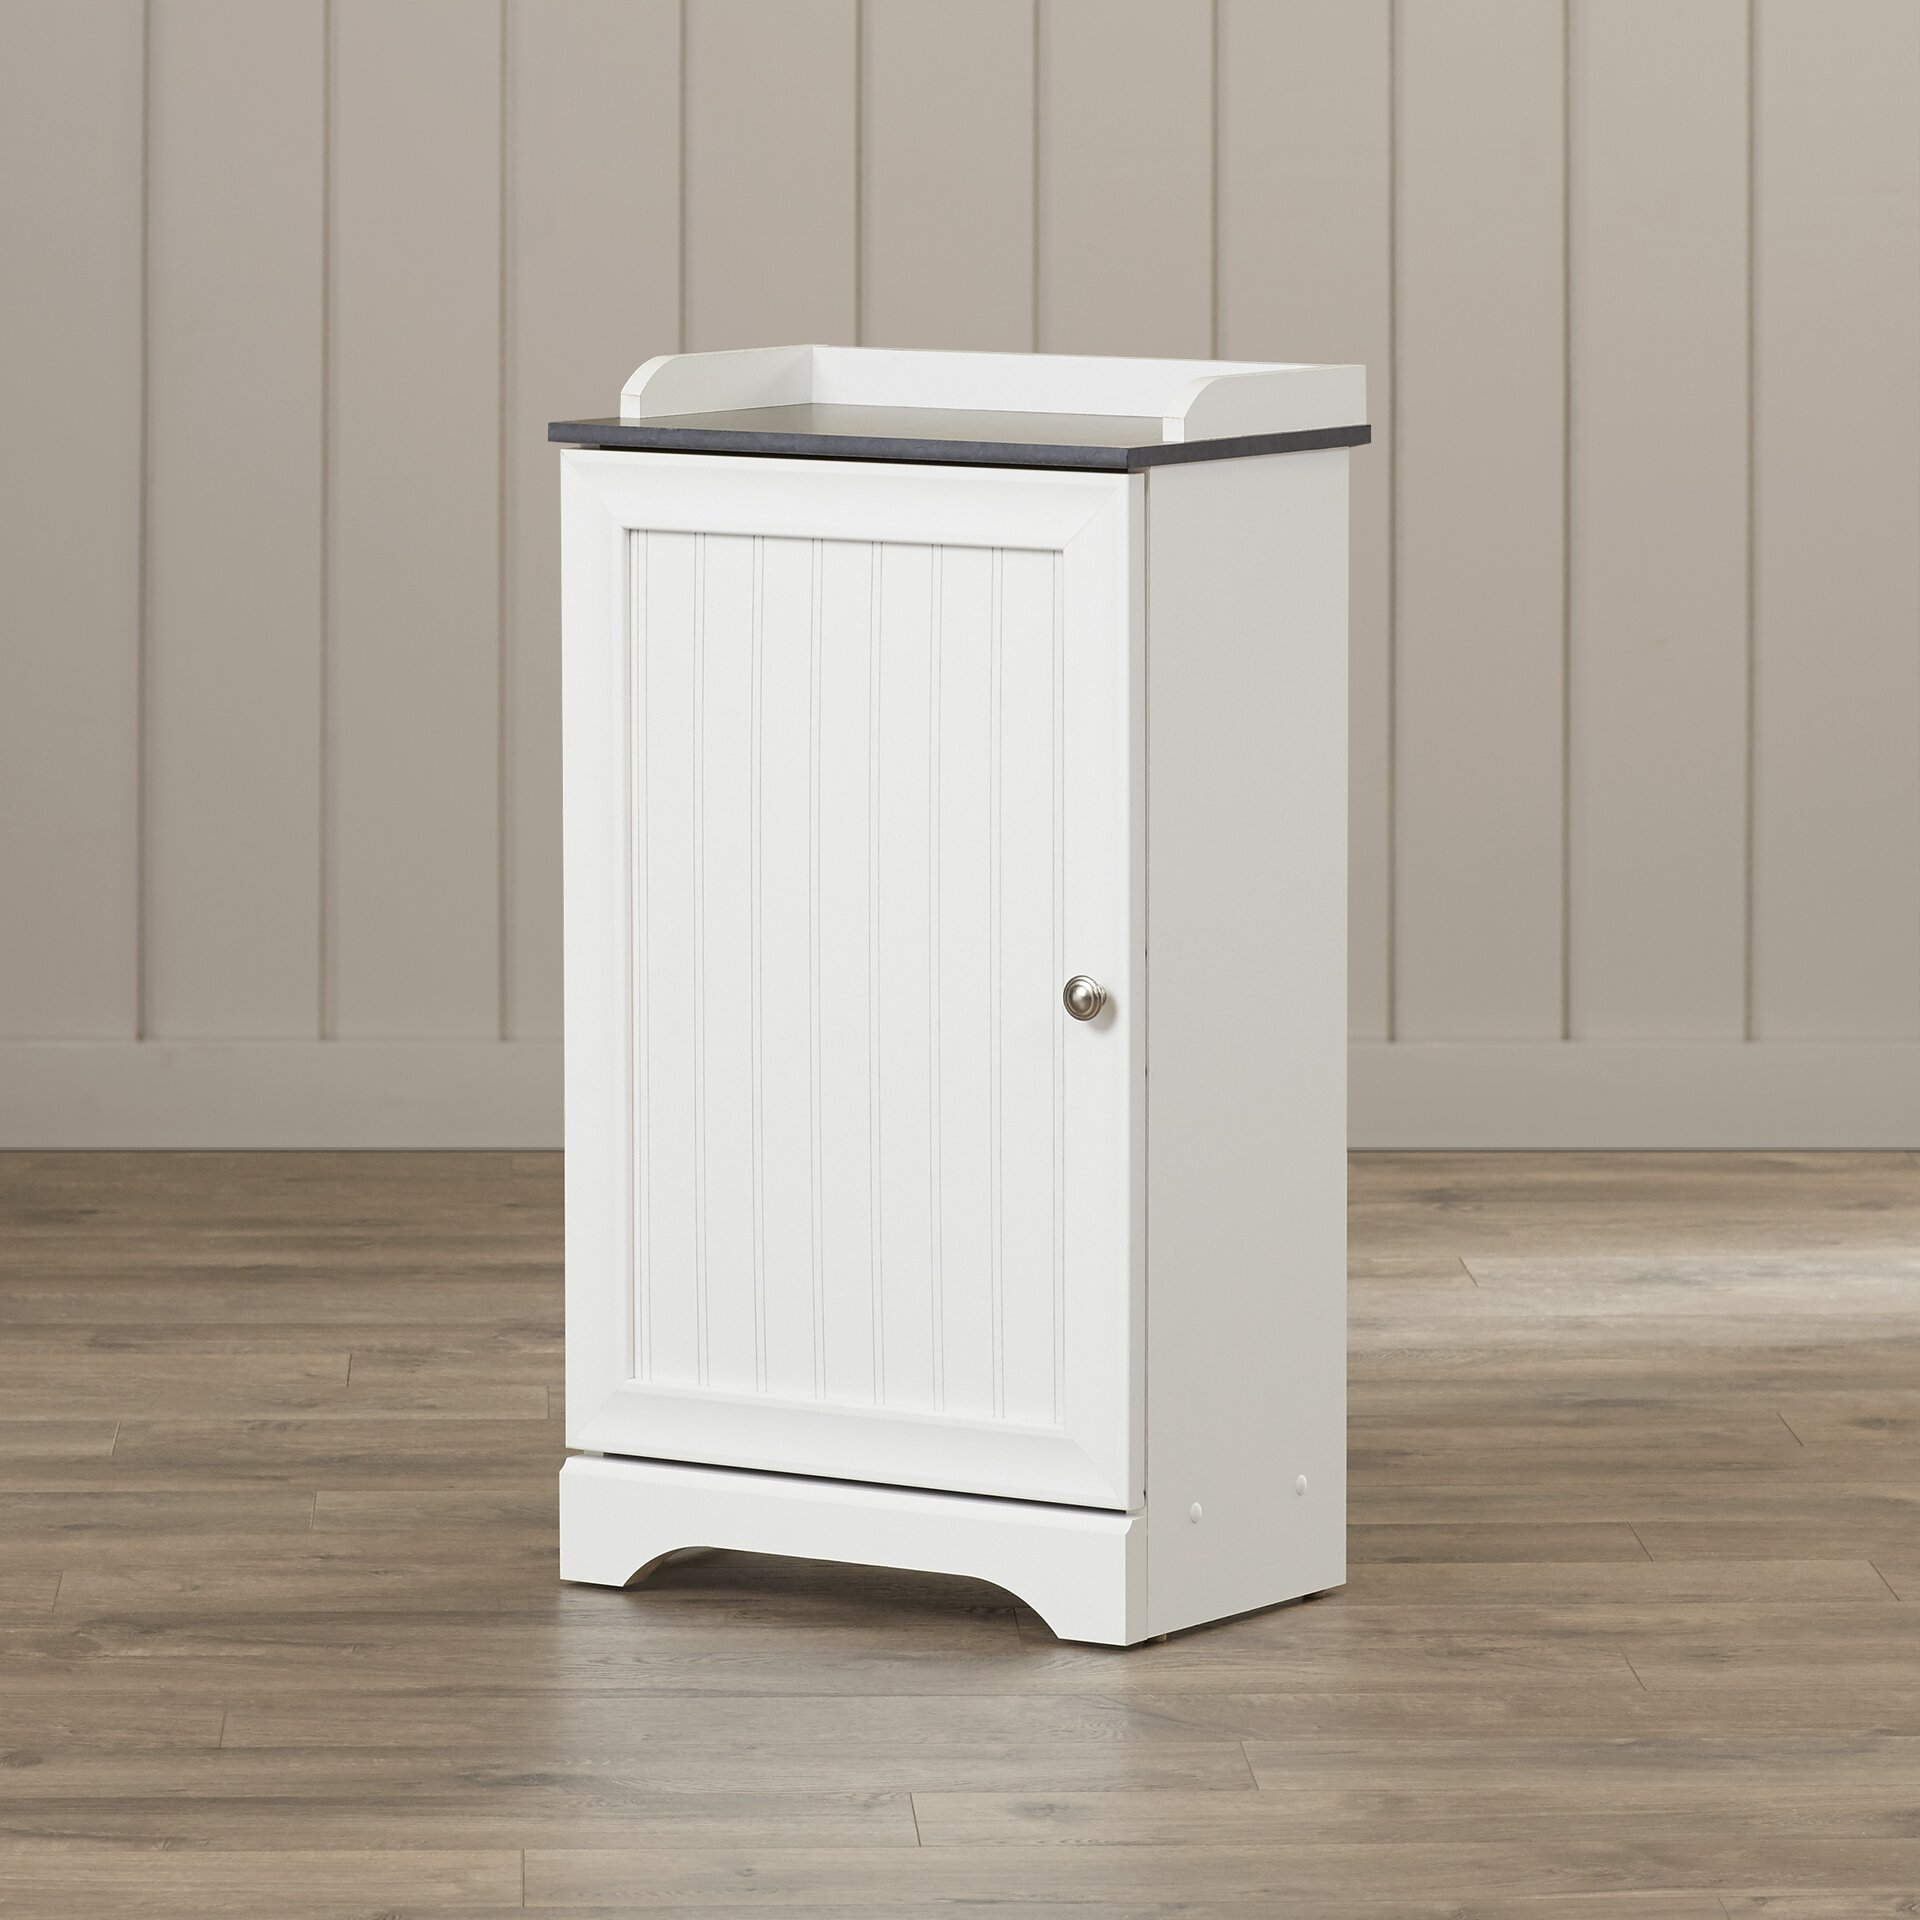 Beachcrest home gulf free standing cabinet reviews - Wayfair furniture bathroom vanities ...